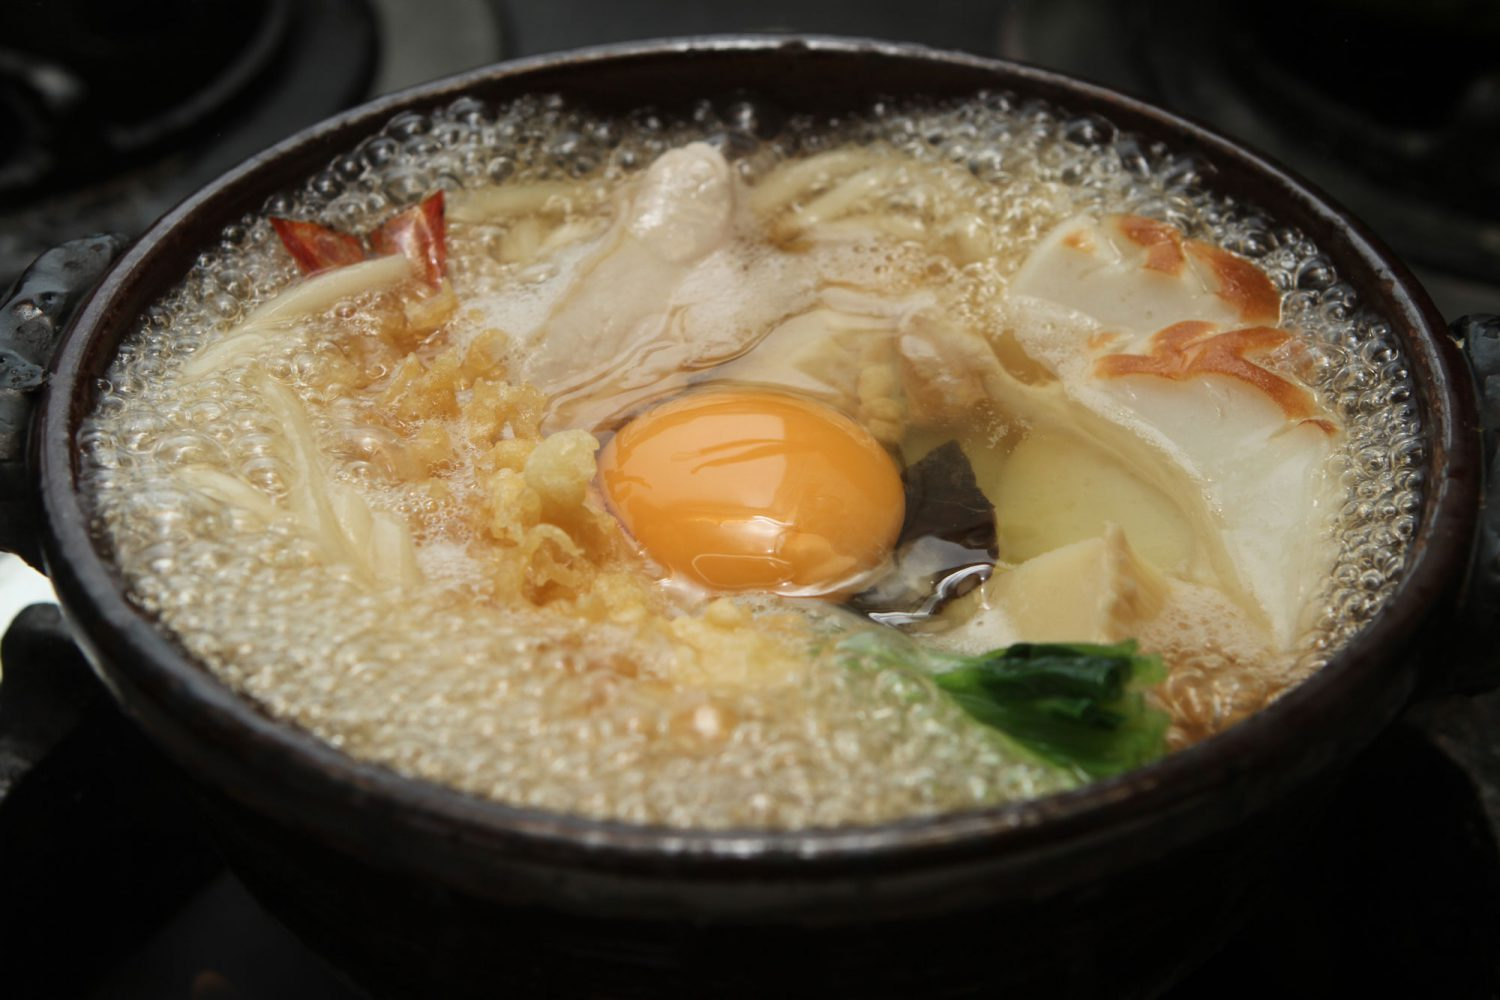 NABE-YAKI(鍋焼き) : Noodles cooked with vegetables, a fried prawn, chicken & raw egg served in earthen-ware casserole